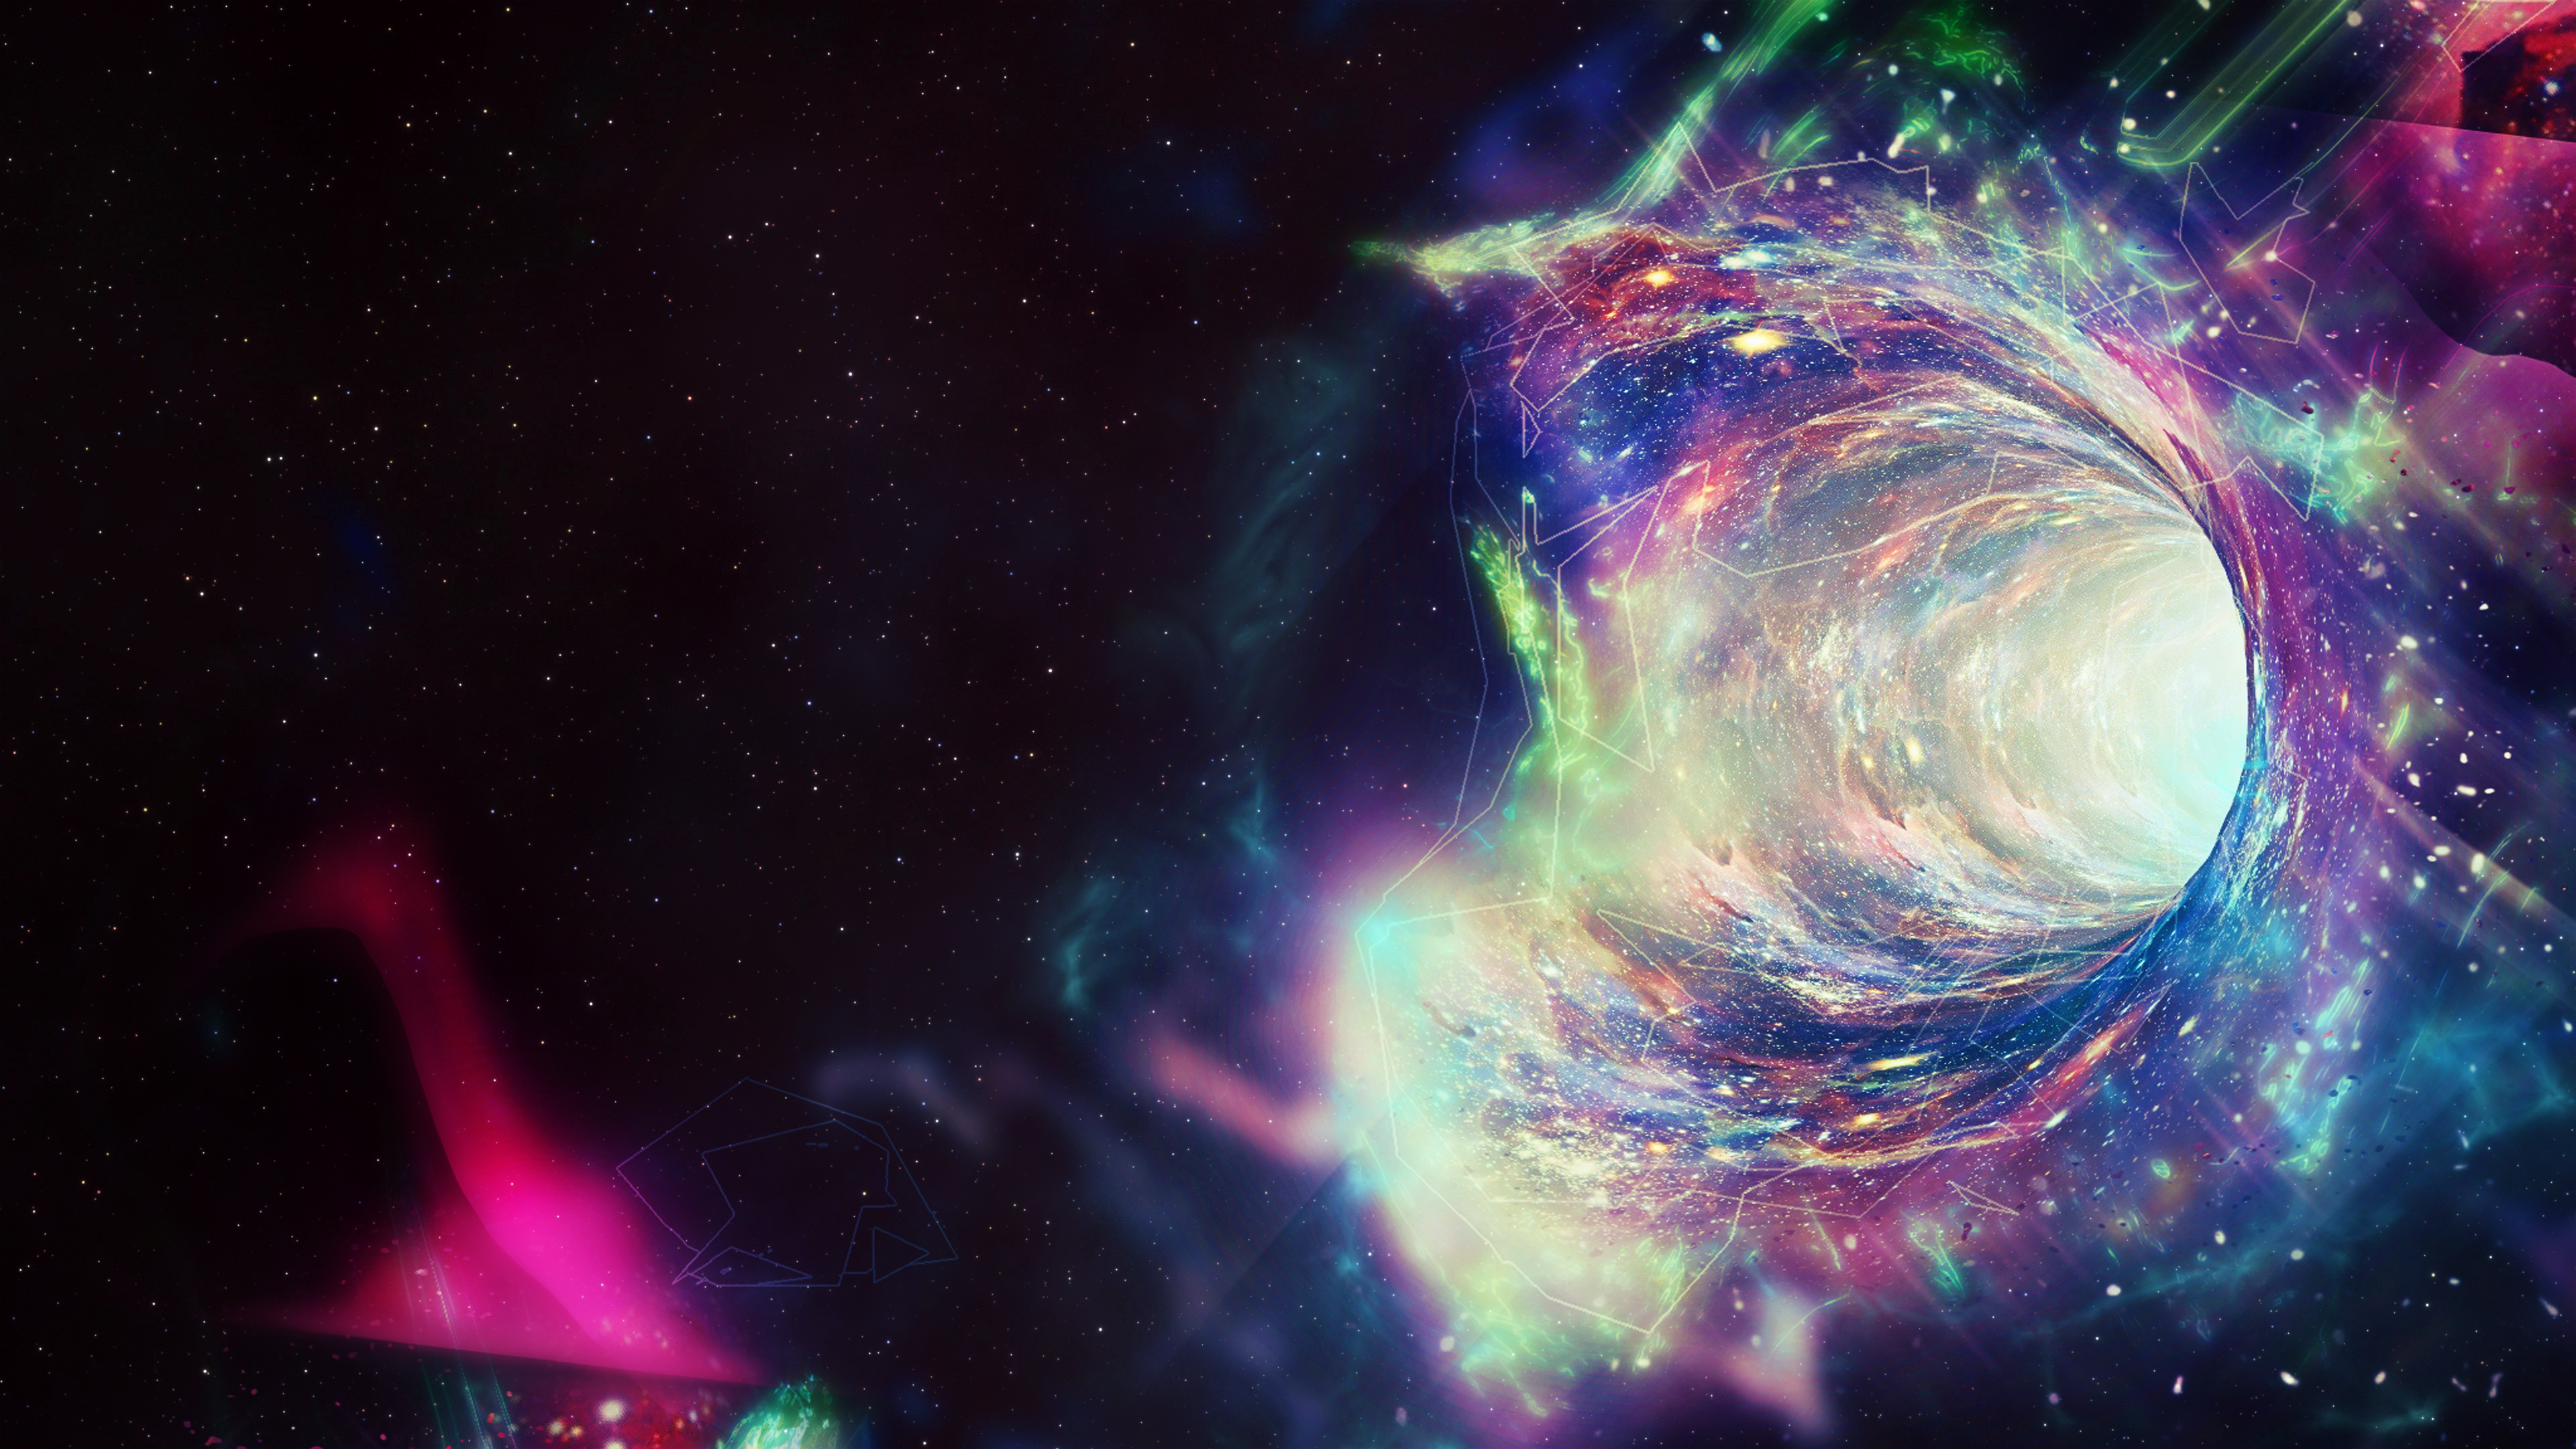 Cool Desktop Backgrounds 4k Posted By Ryan Sellers